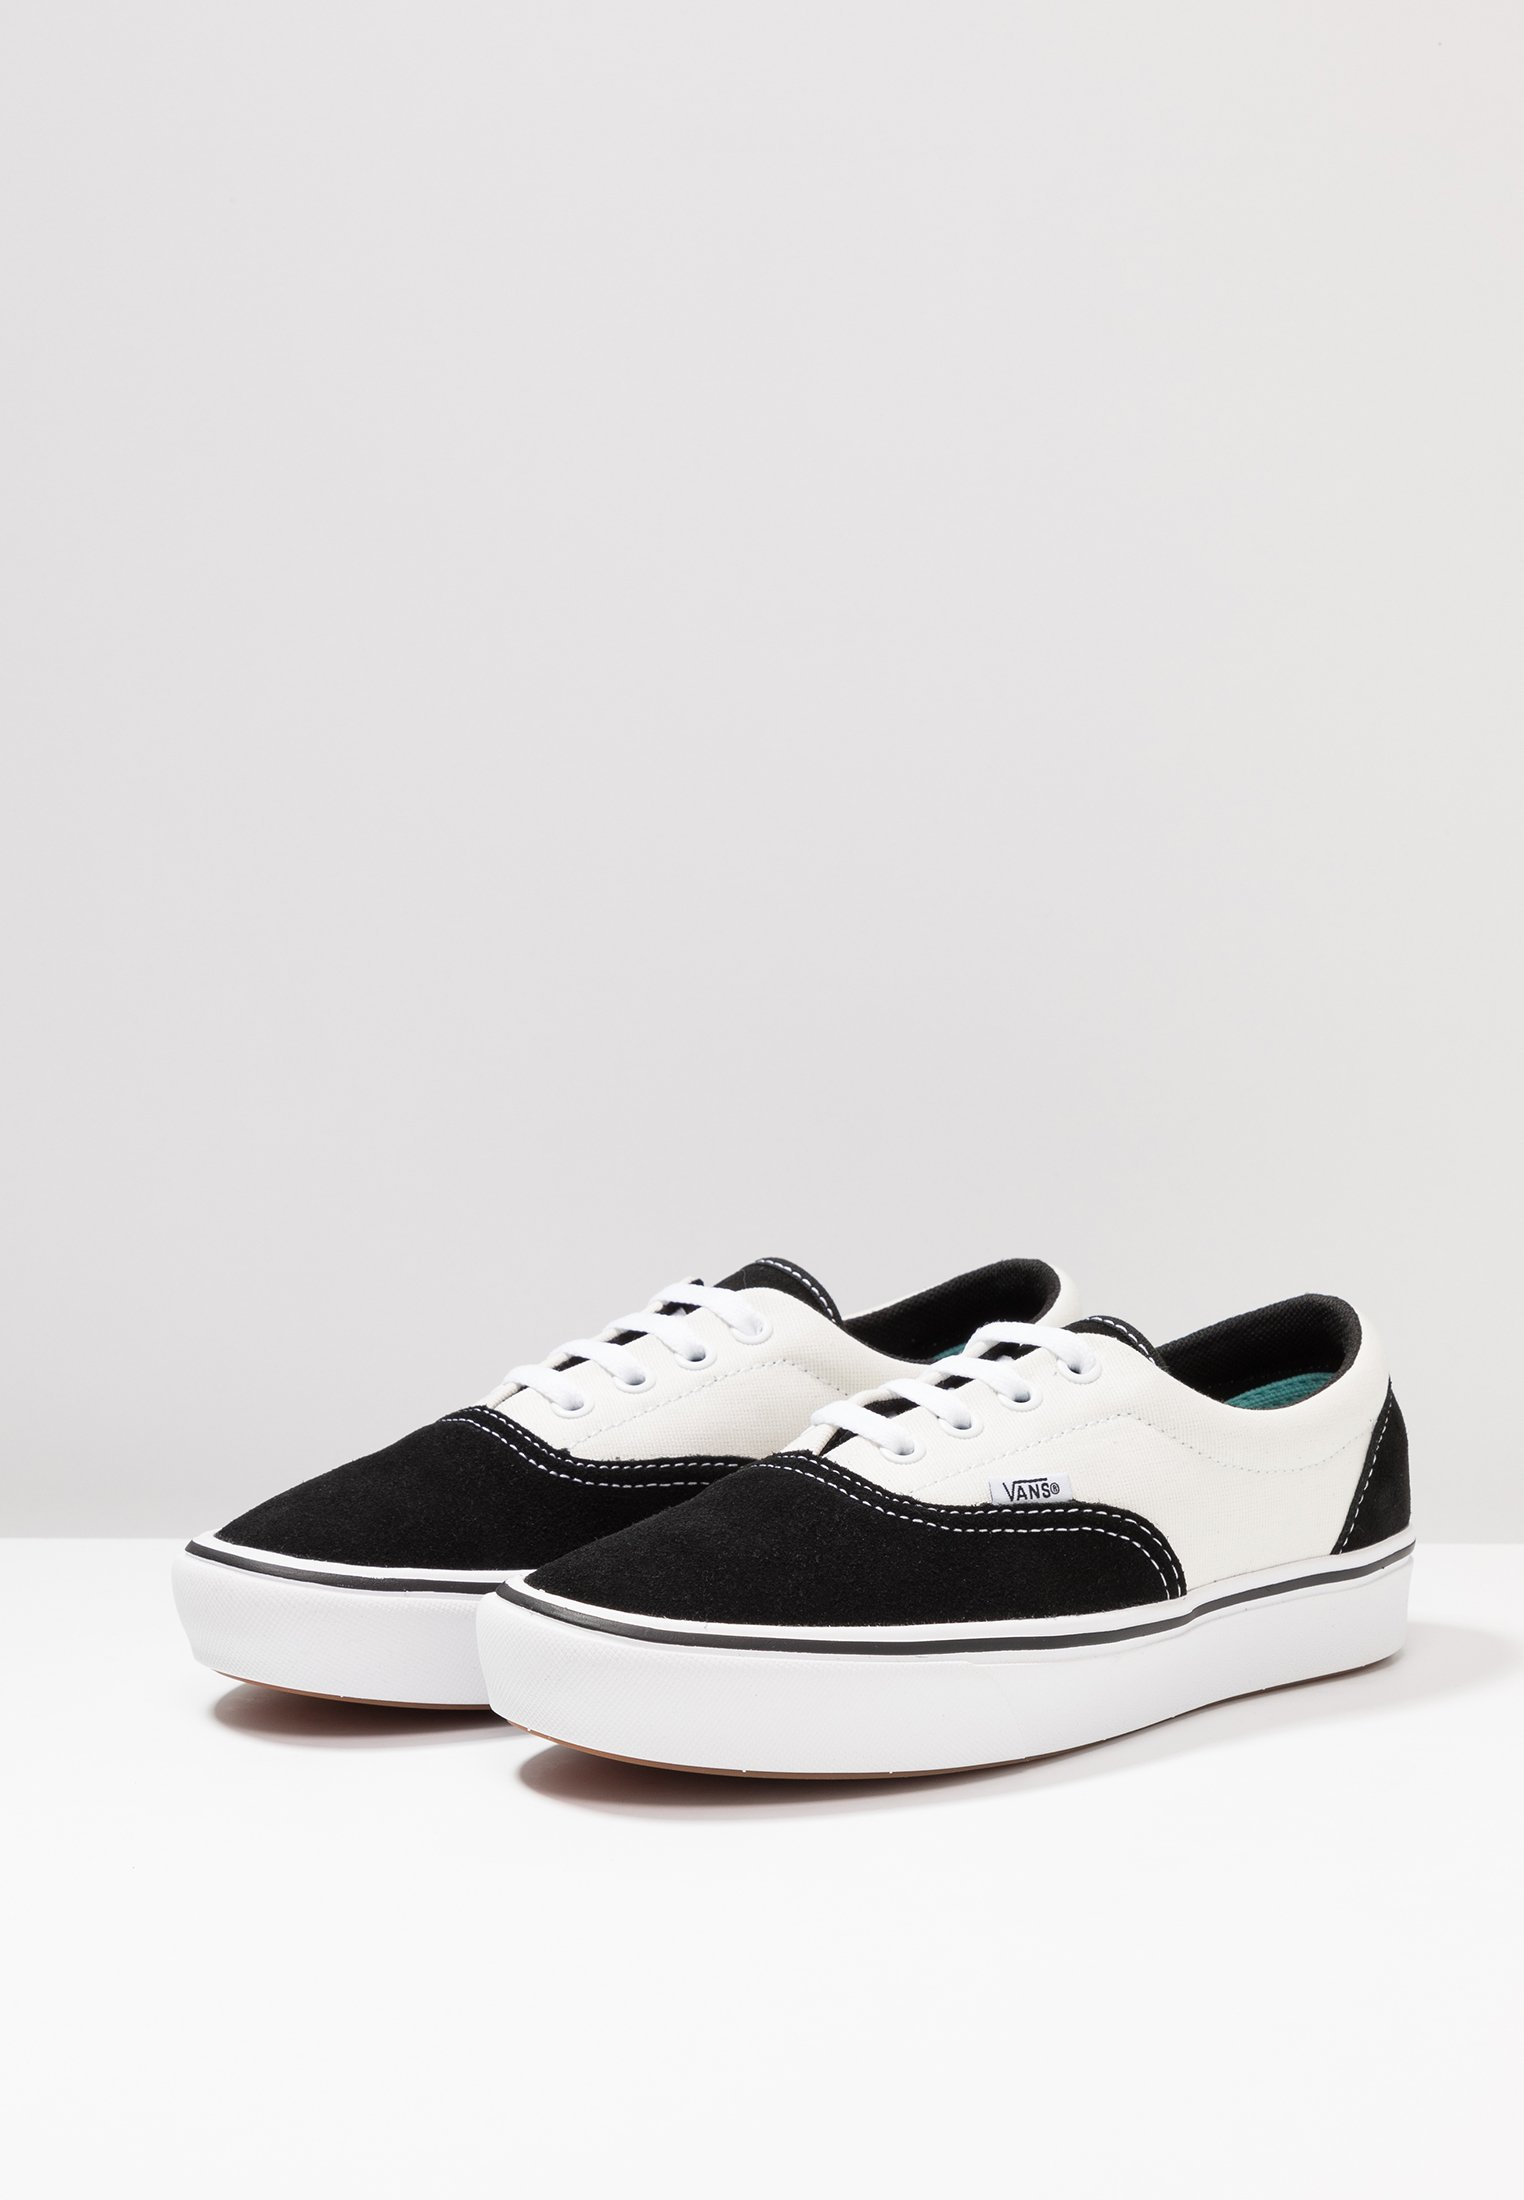 Baskets marshmallow Baskets basses marshmallow black Vans Vans black basses OPkuTXZi